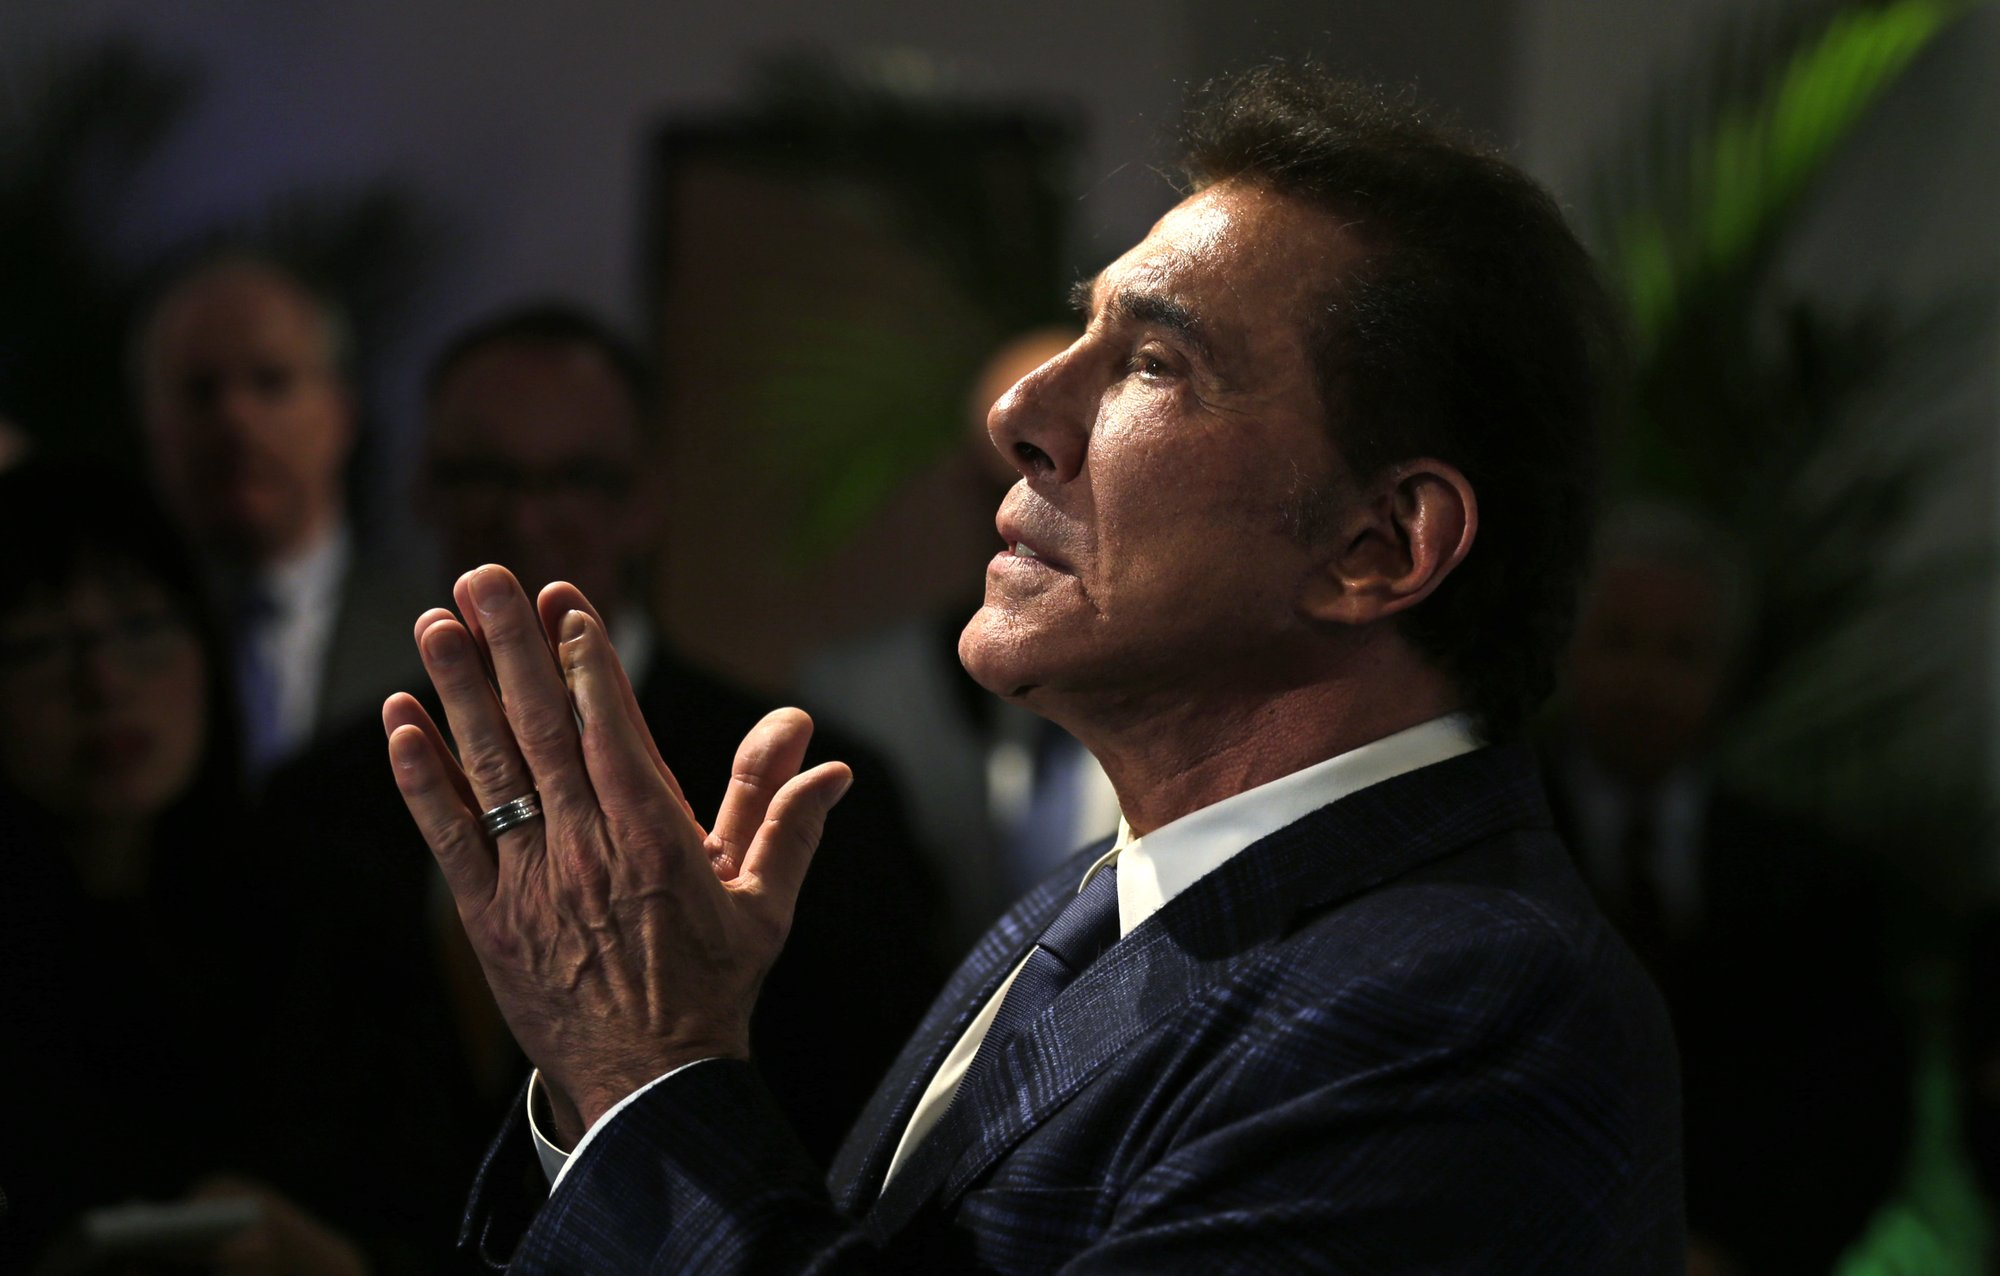 Wynn leaders questioned about response to misconduct claims